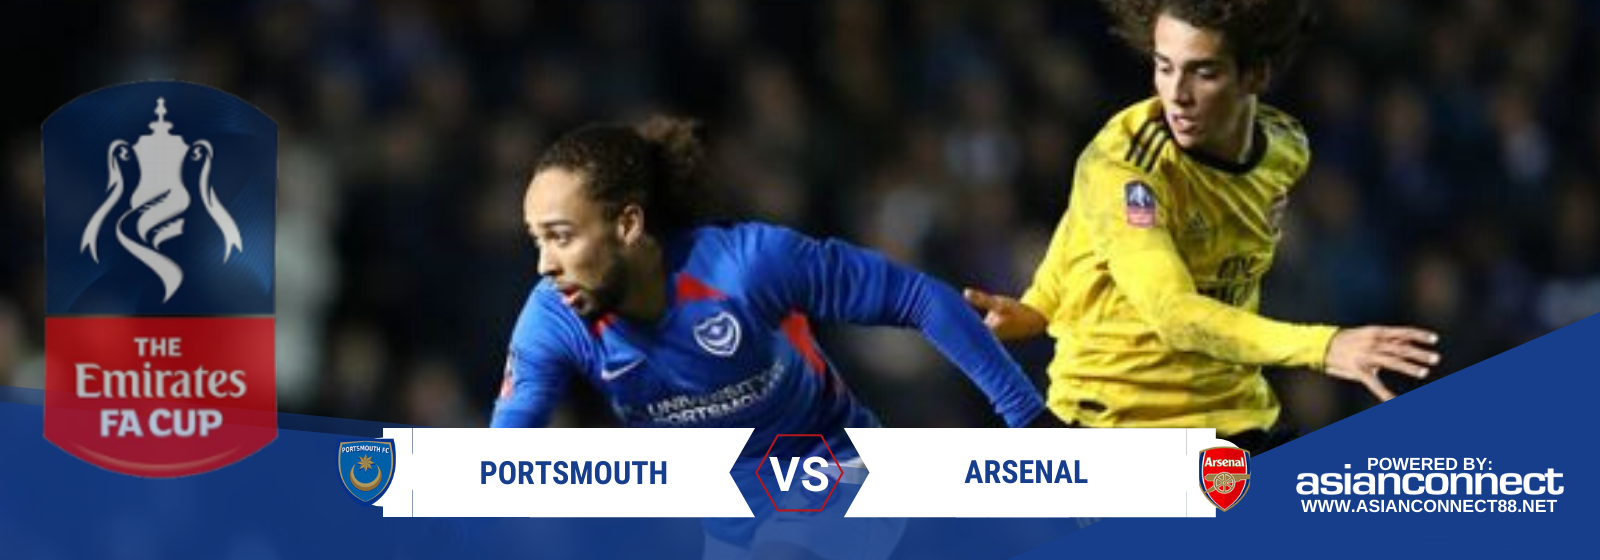 Asianconnect: Portsmouth vs Arsenal Odds for March 02, 2020